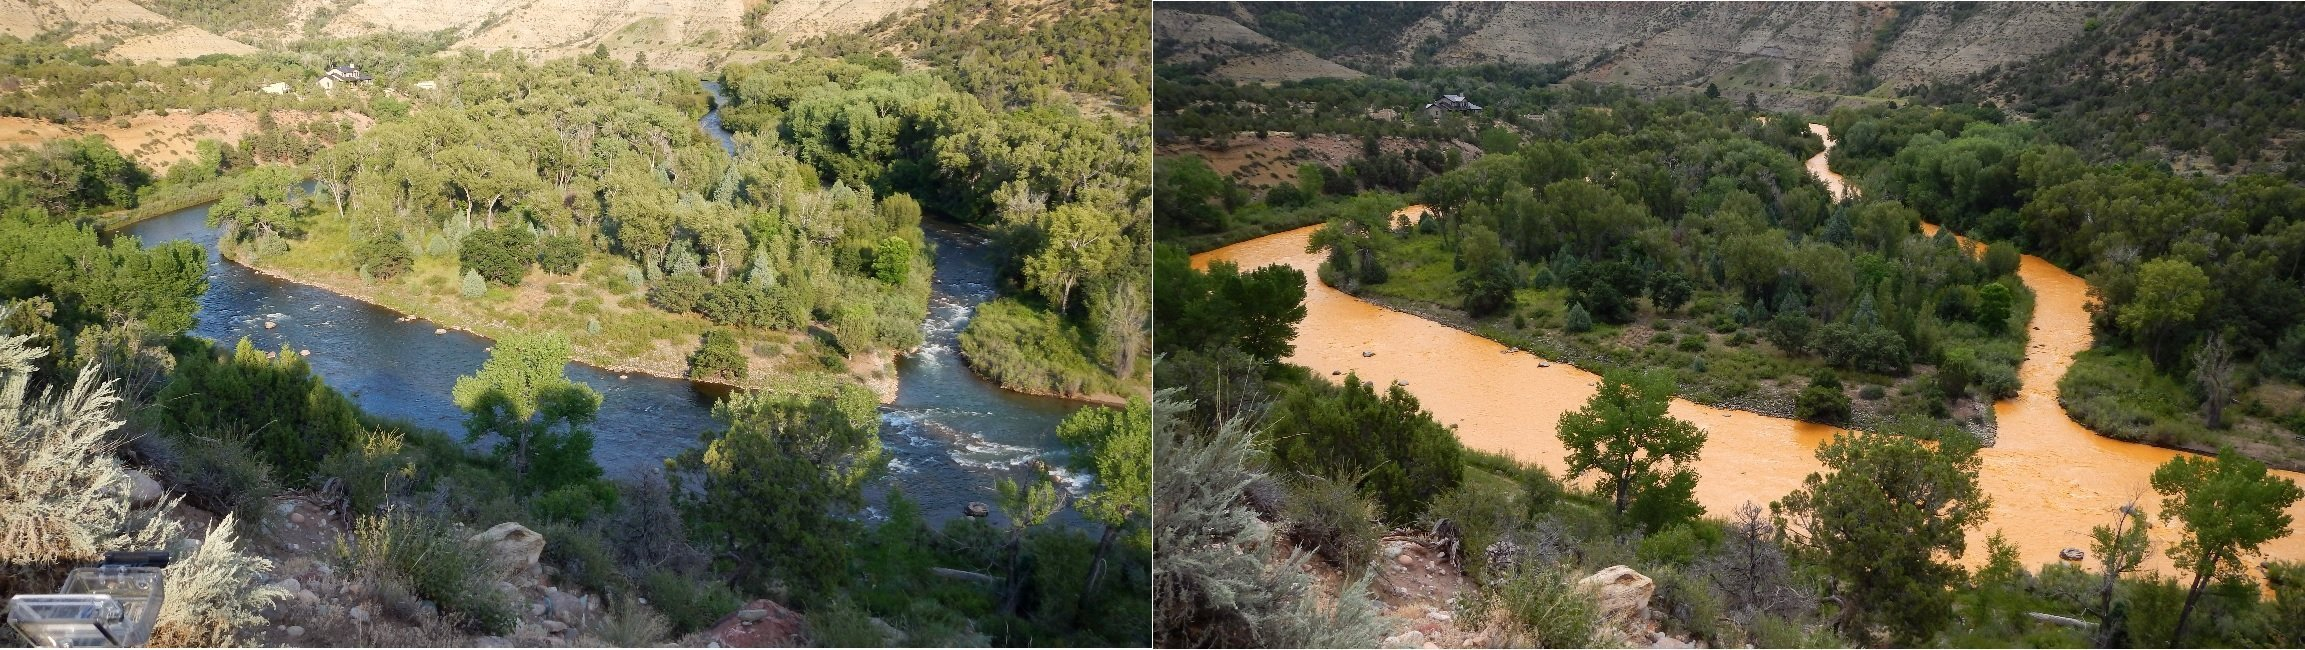 The Animas River before and after a mine waste spill. Credit:Tom Bartles